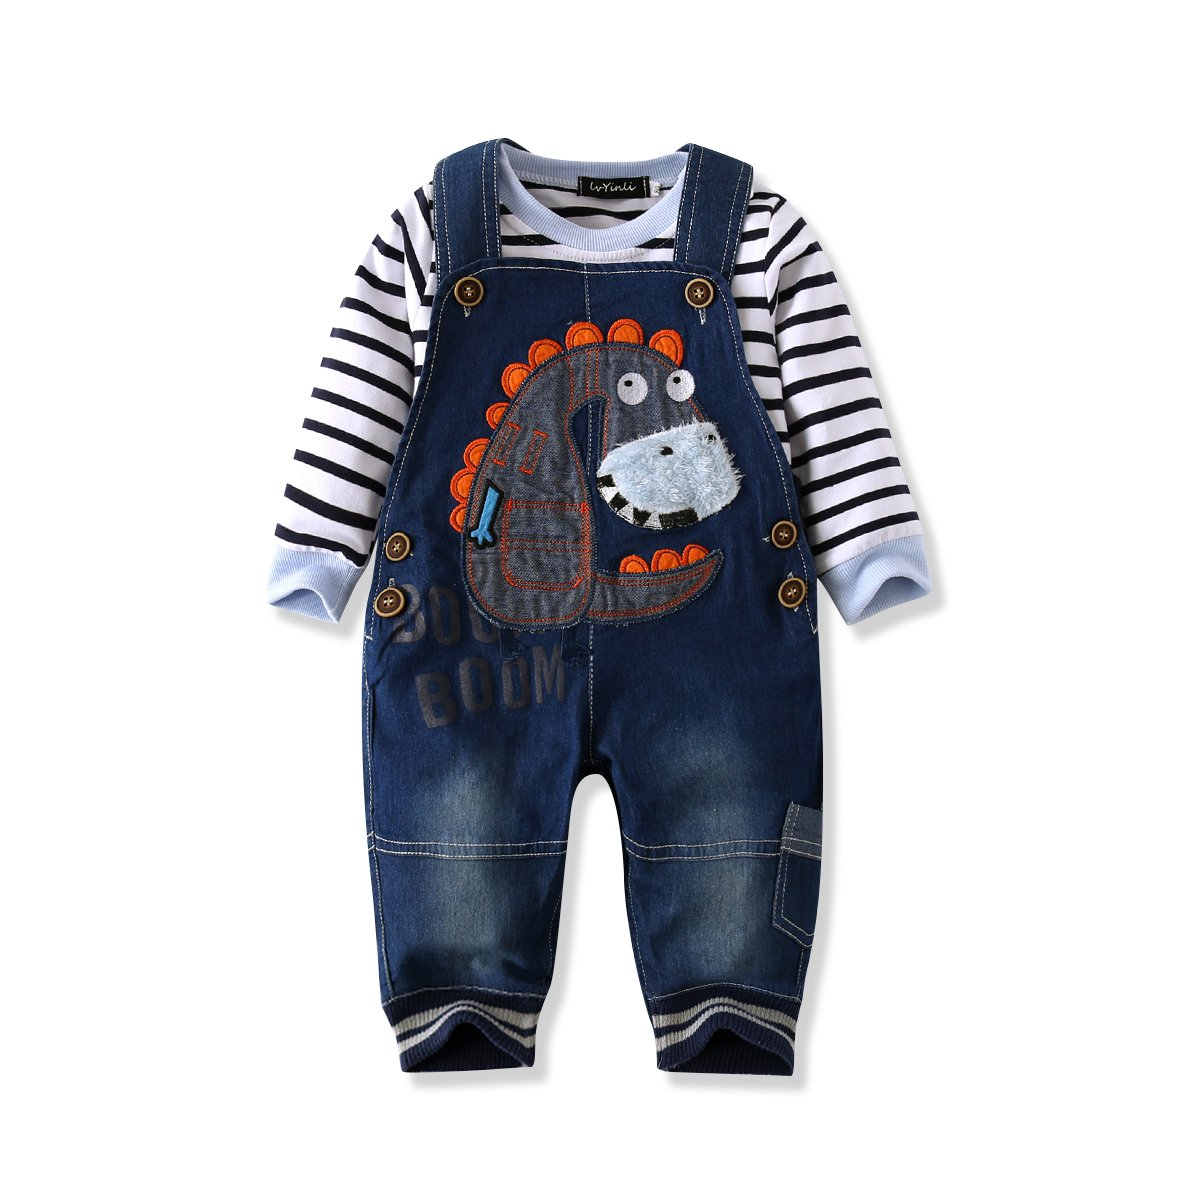 7f8a75ed LvYinLi US Baby Boy Clothes Boys\' Romper Jumpsuit Overalls Stripe Rompers  Sets Include: 1pc Jumpsuit Size:80(3-8 months)-90(8-14 months)-100(2years)